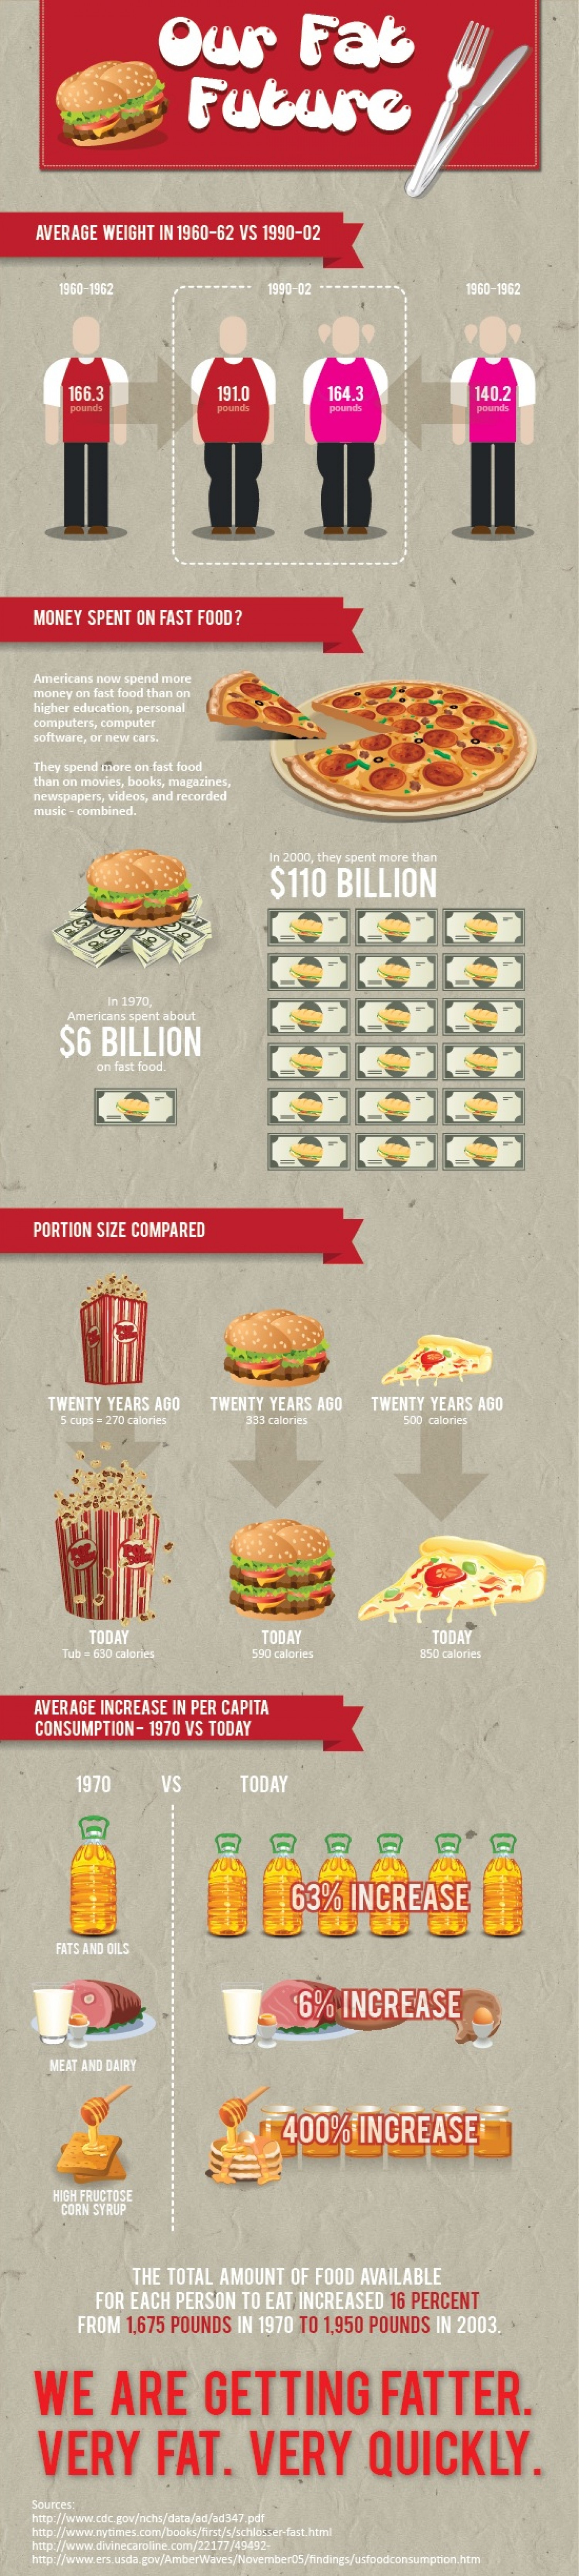 18. Why Americans are getting fatter